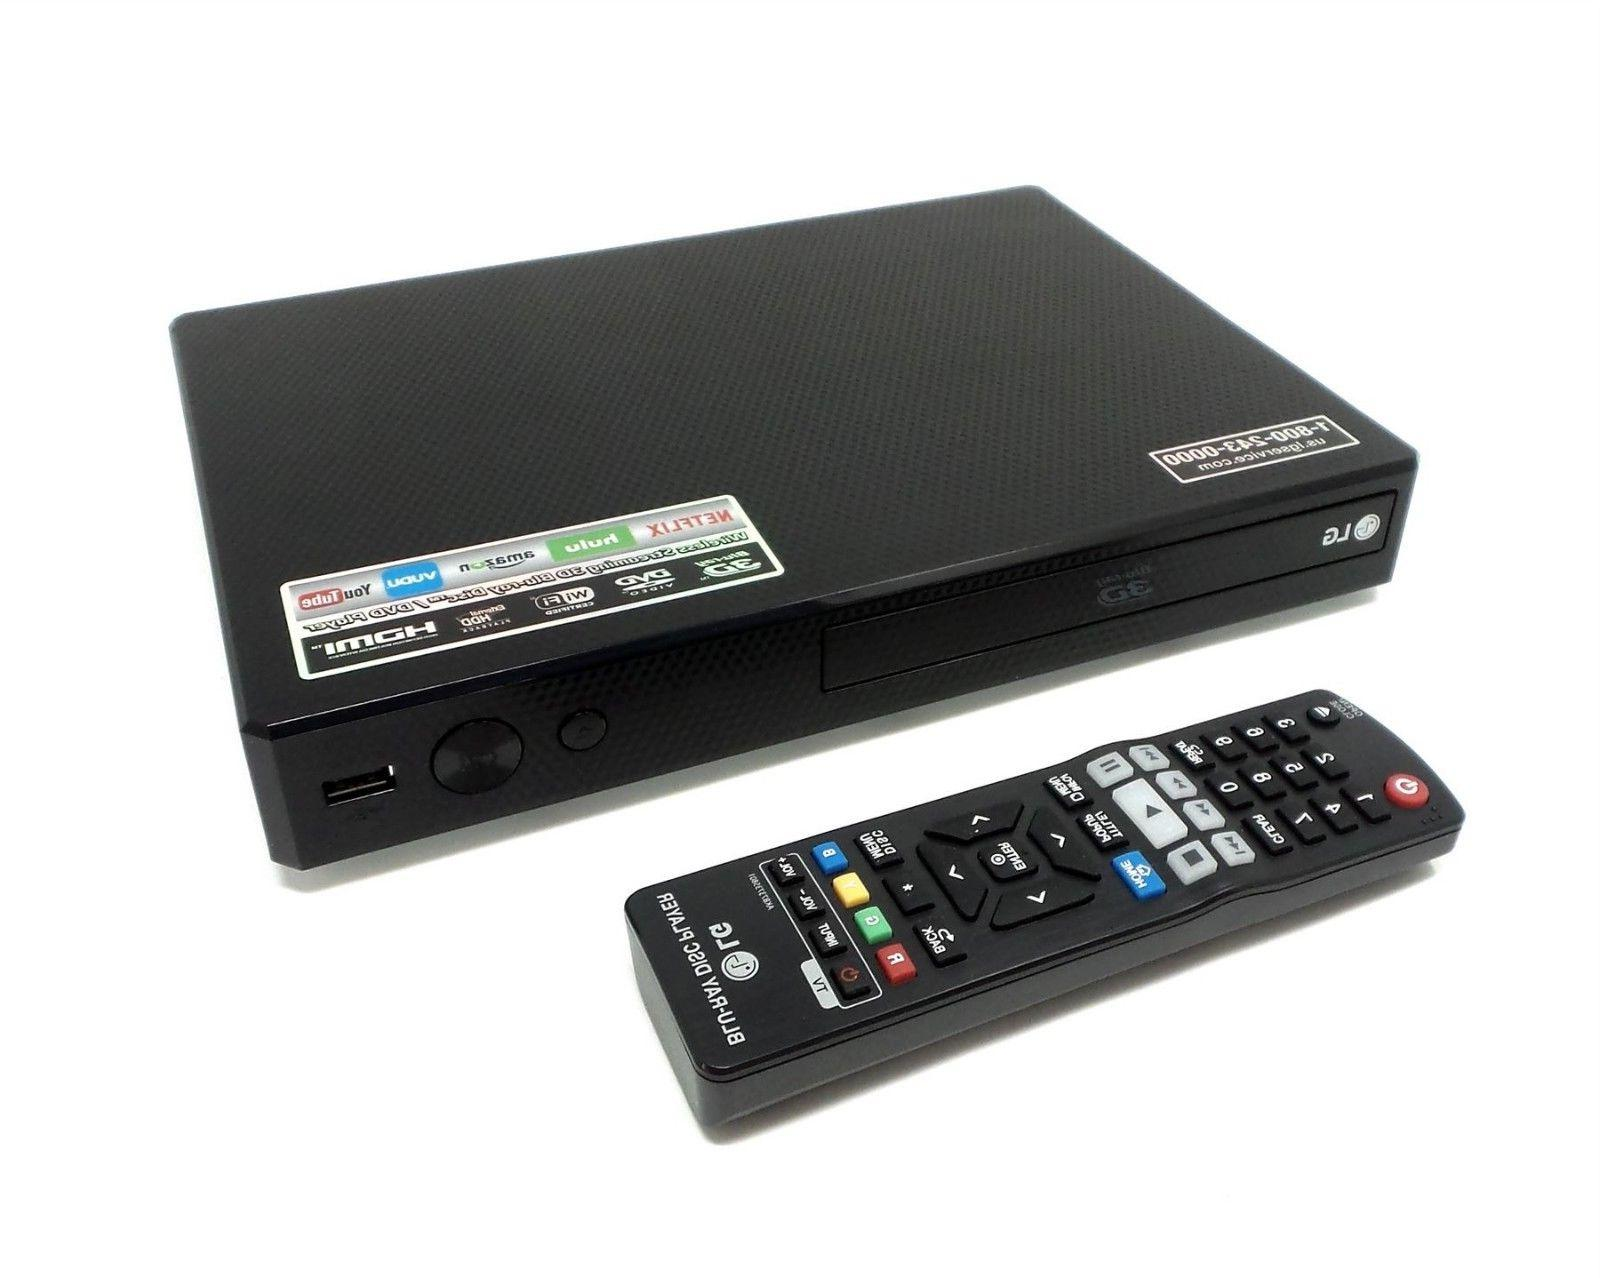 LG Network 3D / Blue-Ray Disk / DVD Player  BP550